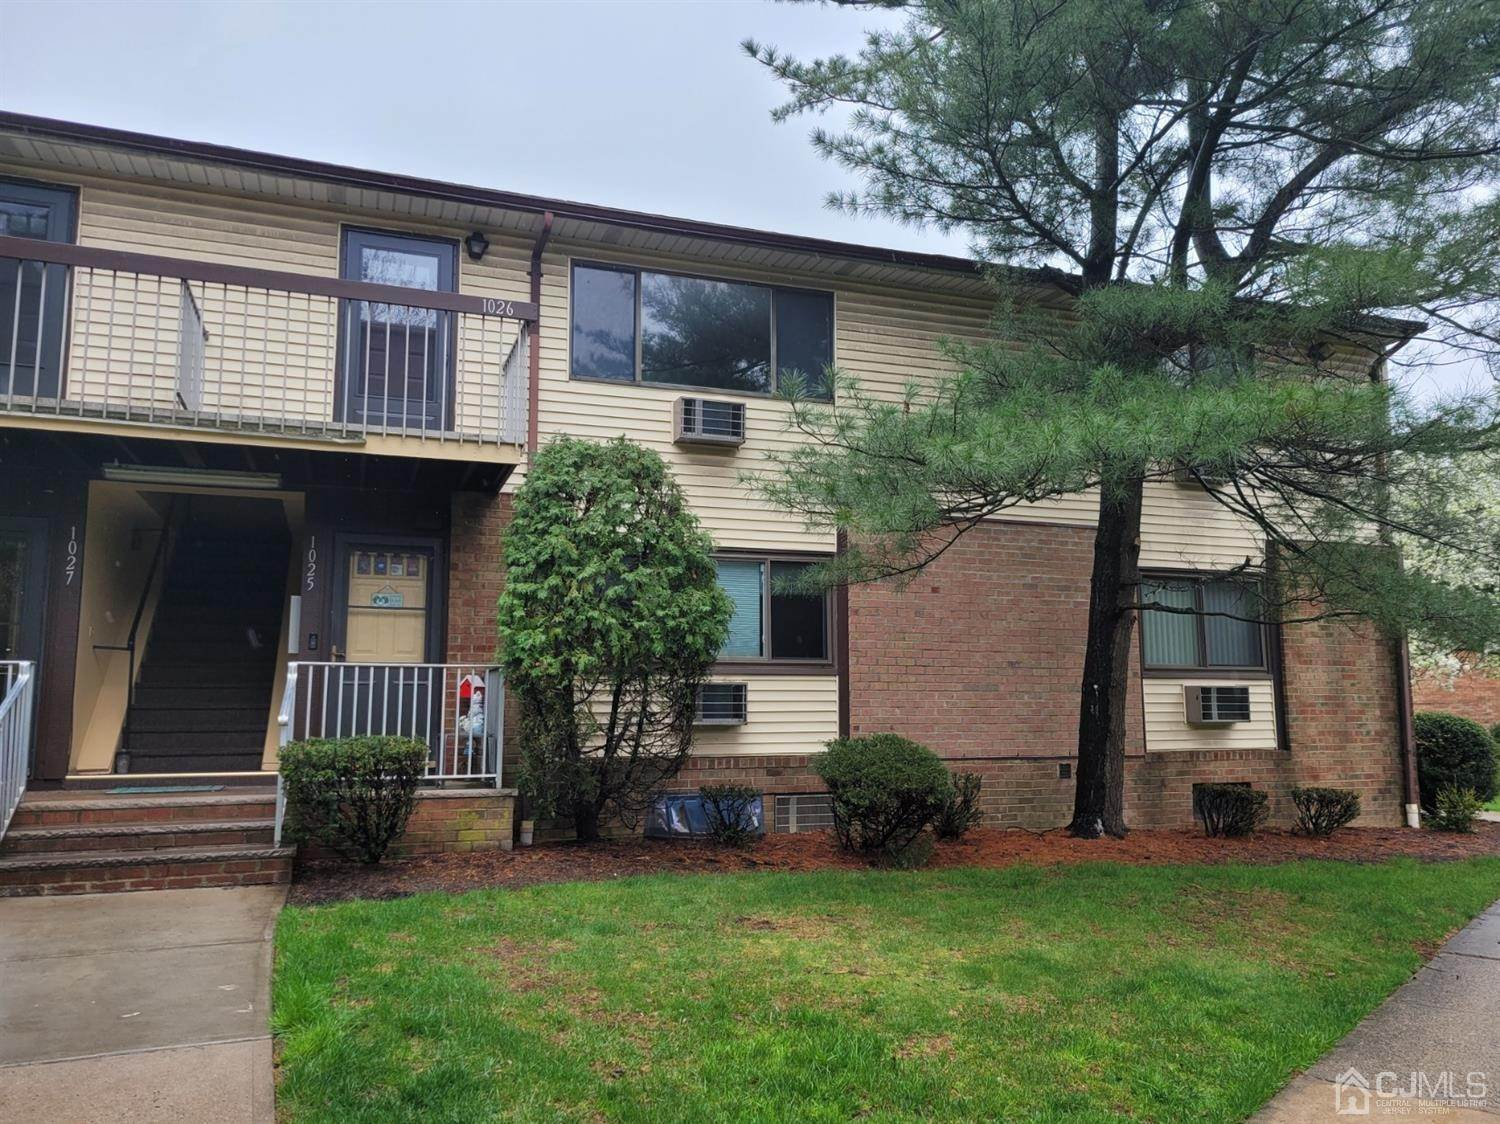 Apartments / Flats for Rent at 1026 Cricket Lane Woodbridge, New Jersey, 07095 United States